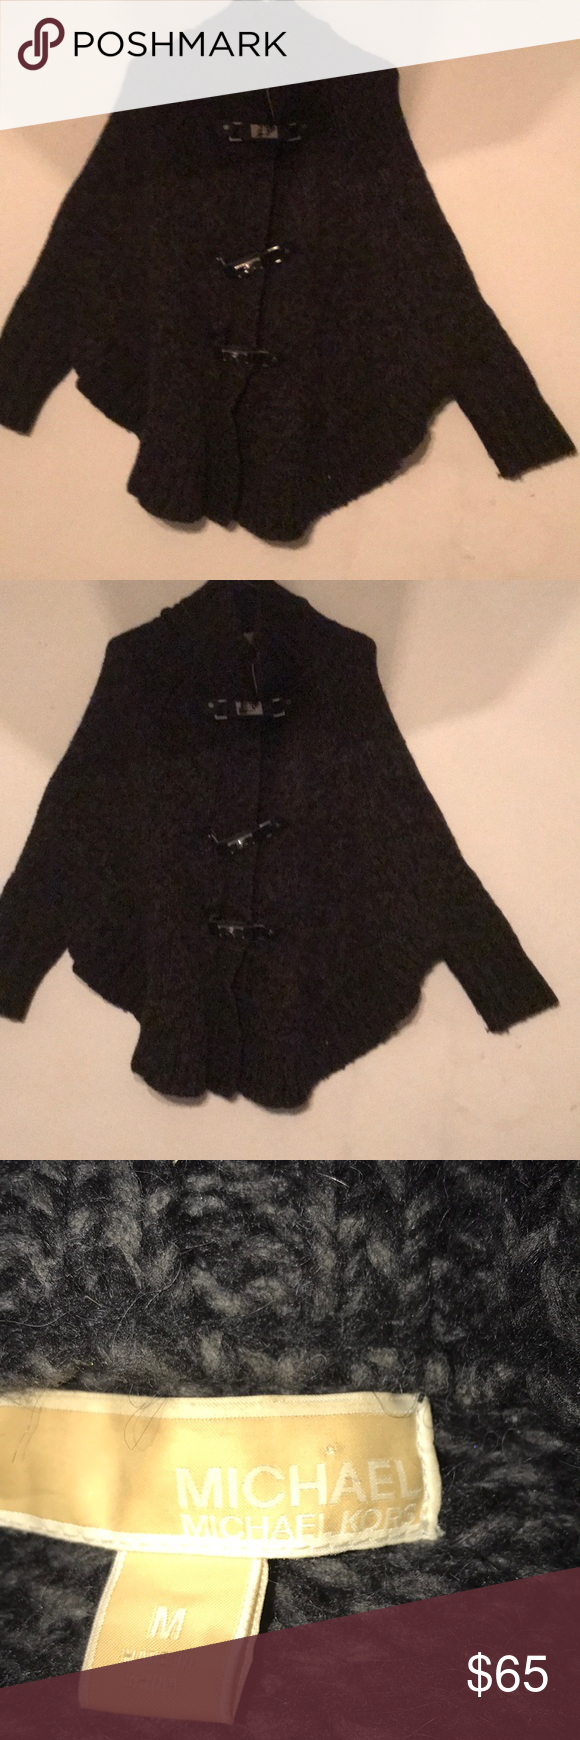 Michael Kors Gray Waffle Knit Toggle Poncho M/L Michael Kors Rare Find Women's Gray Waffle Knit Toggle Poncho fits a M/L Zippers up and Has Steel Buckled Hardware. Great winter sweater that pairs well with jeans and boots. Michael Kors Sweaters Shrugs & Ponchos